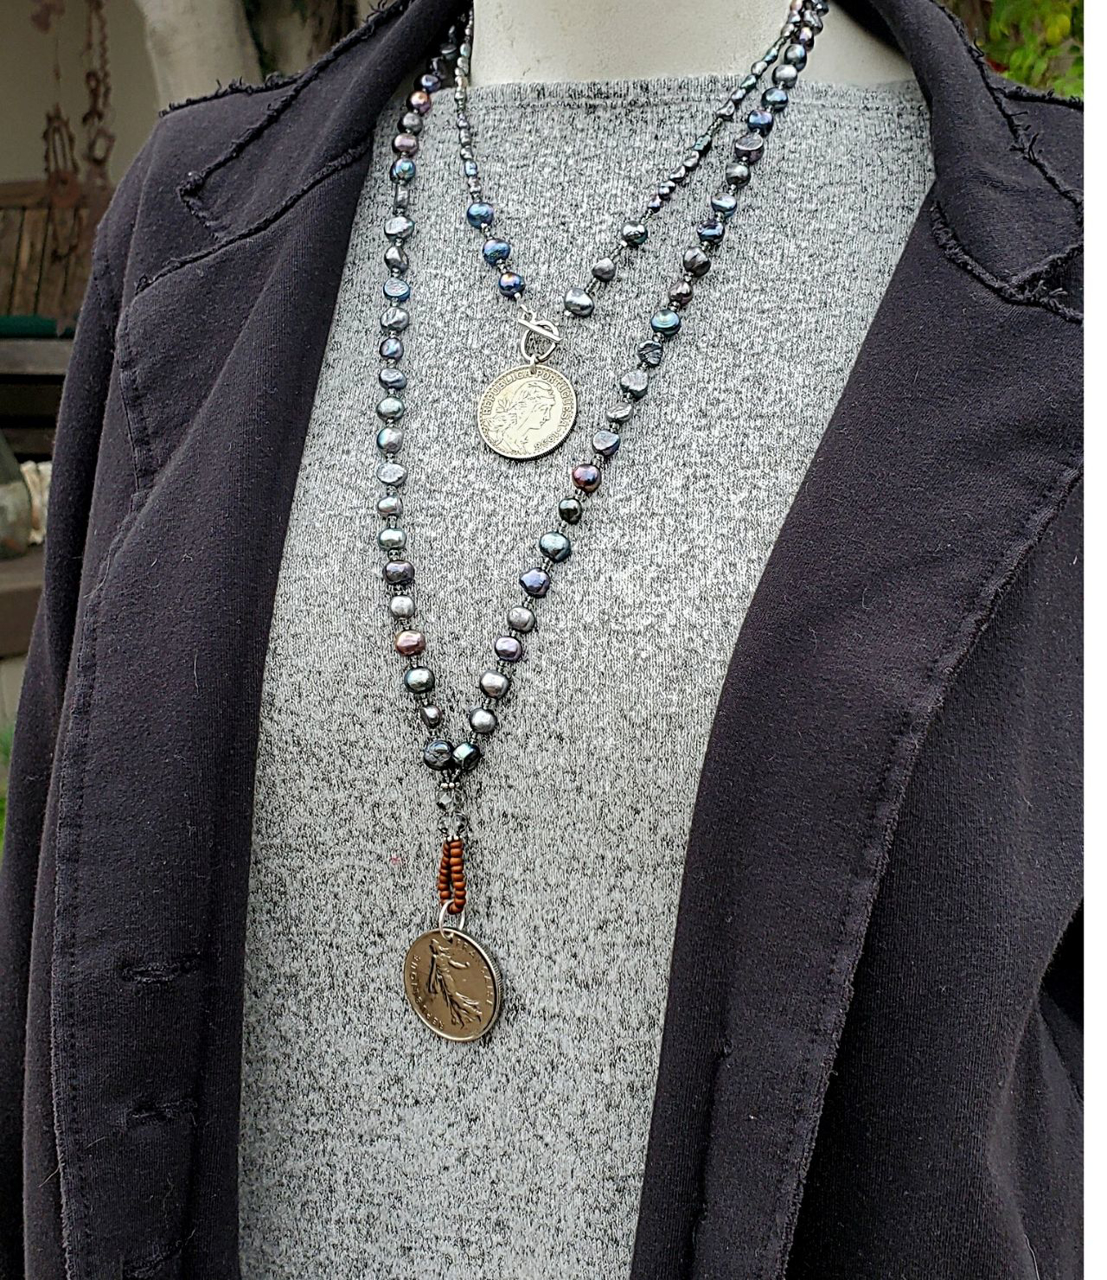 wearing layered blue pearl silver coin necklaces